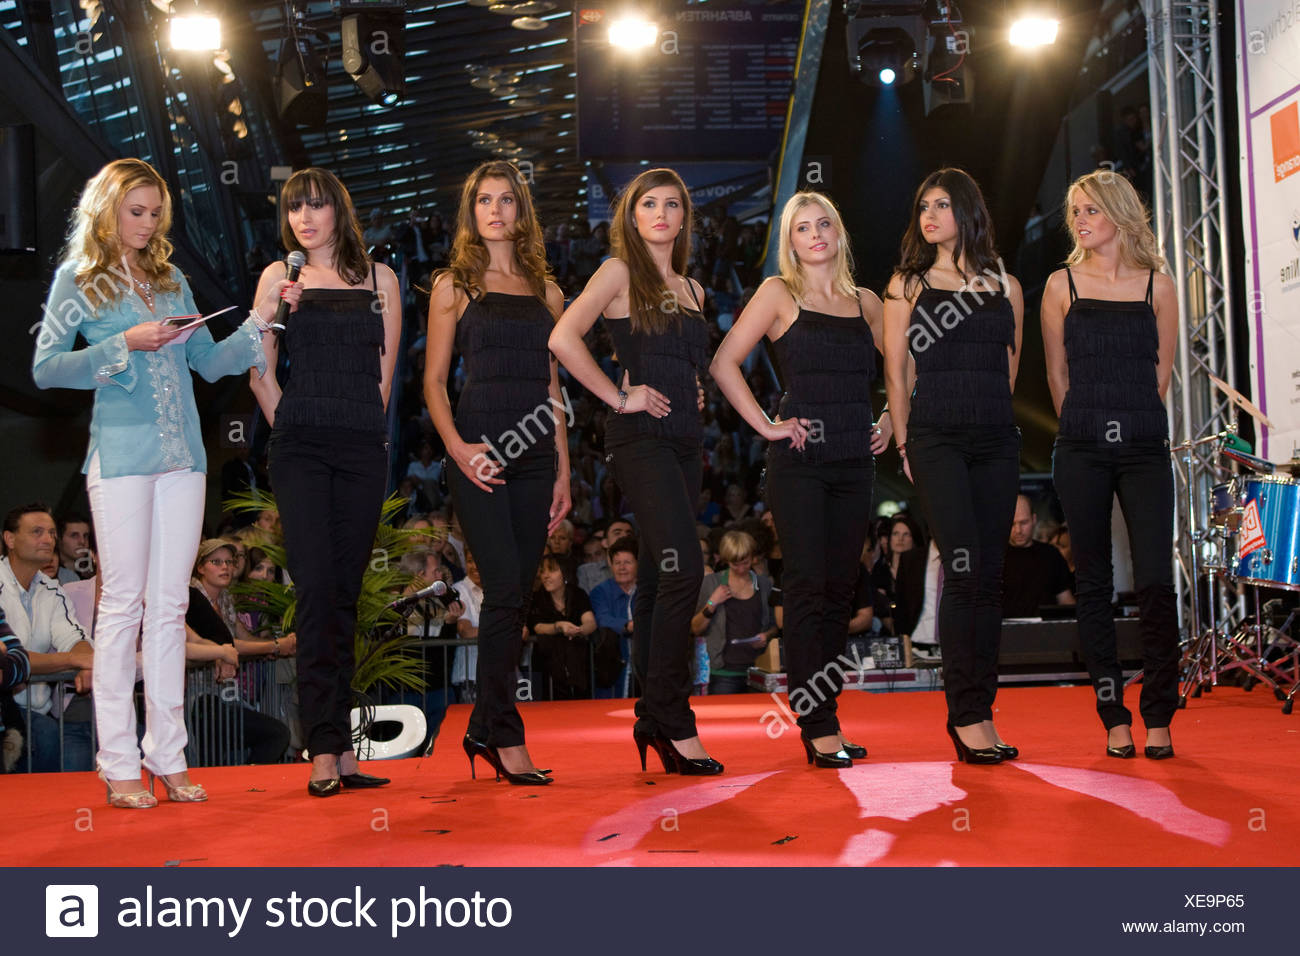 6 of the 12 finalists, from left, Nicole Mueller 23 from Rotheburg, 1st, Rana Alkhoory 21 from Rickenbach, 2nd, Andrea Reinhard - Stock Image